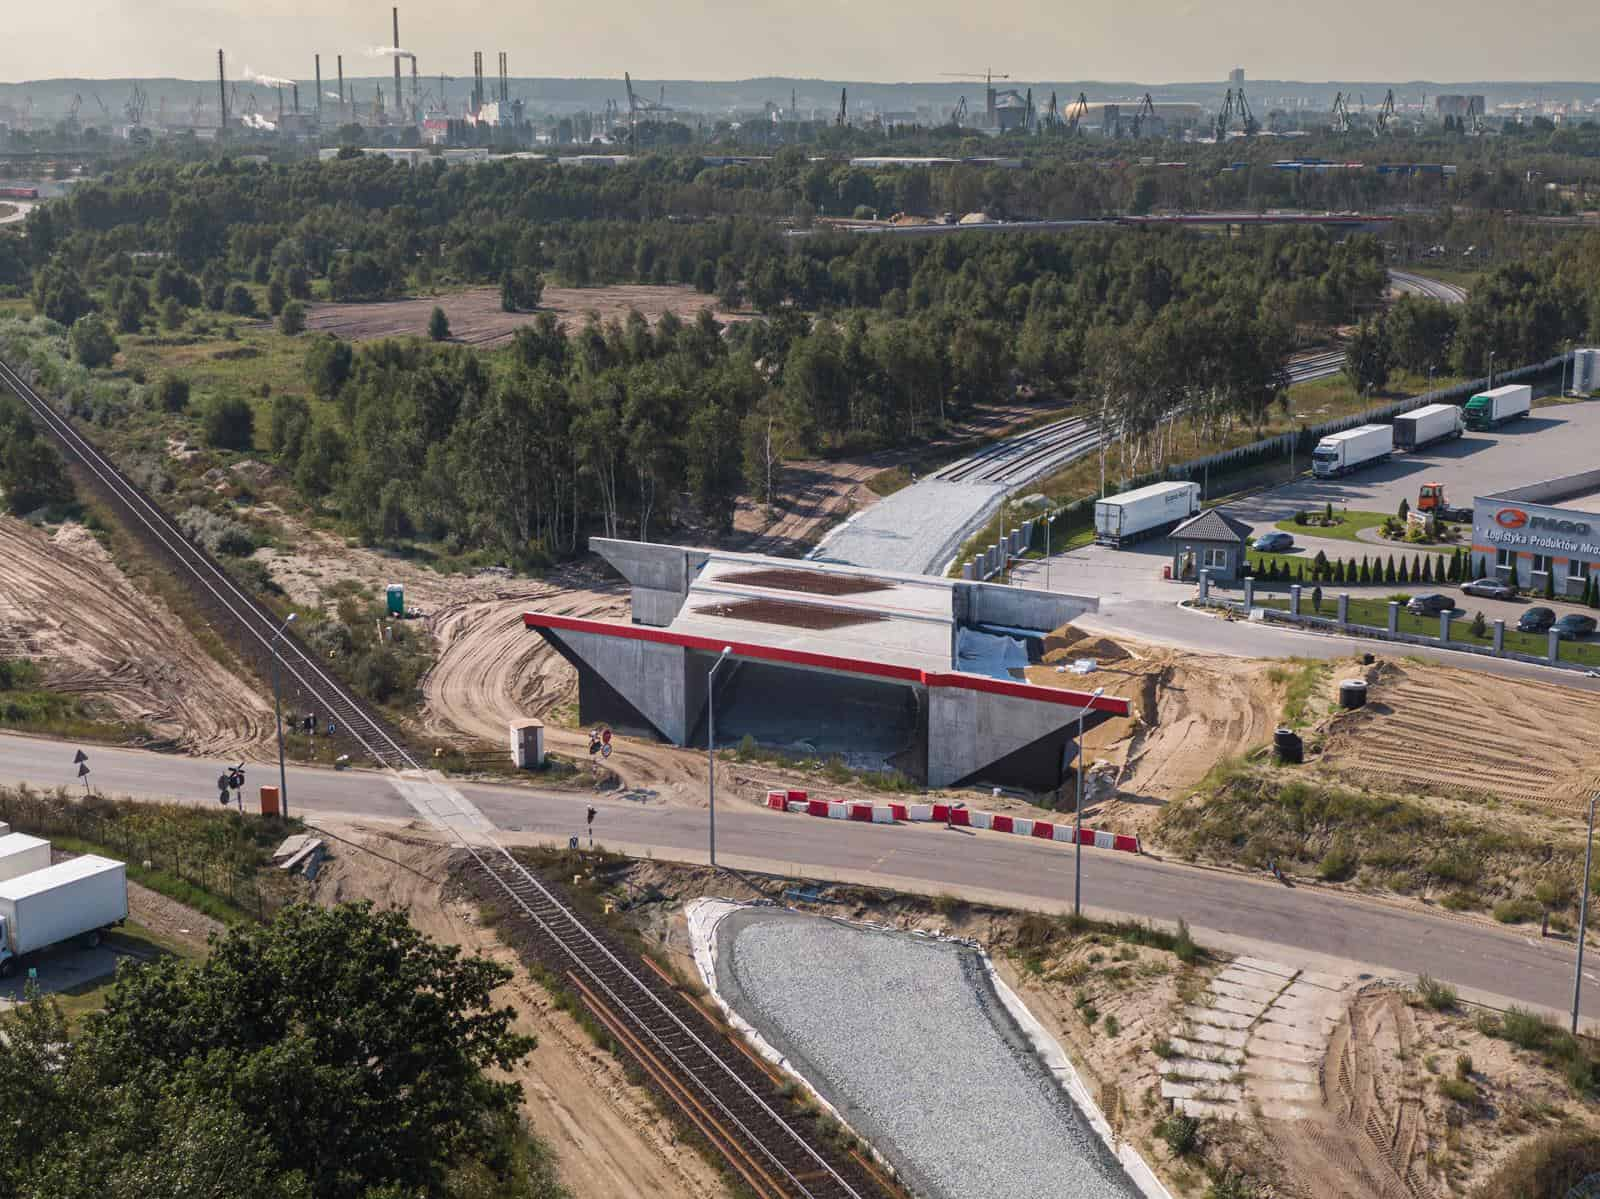 Modernization of the railway and road system, Port of Gdańsk